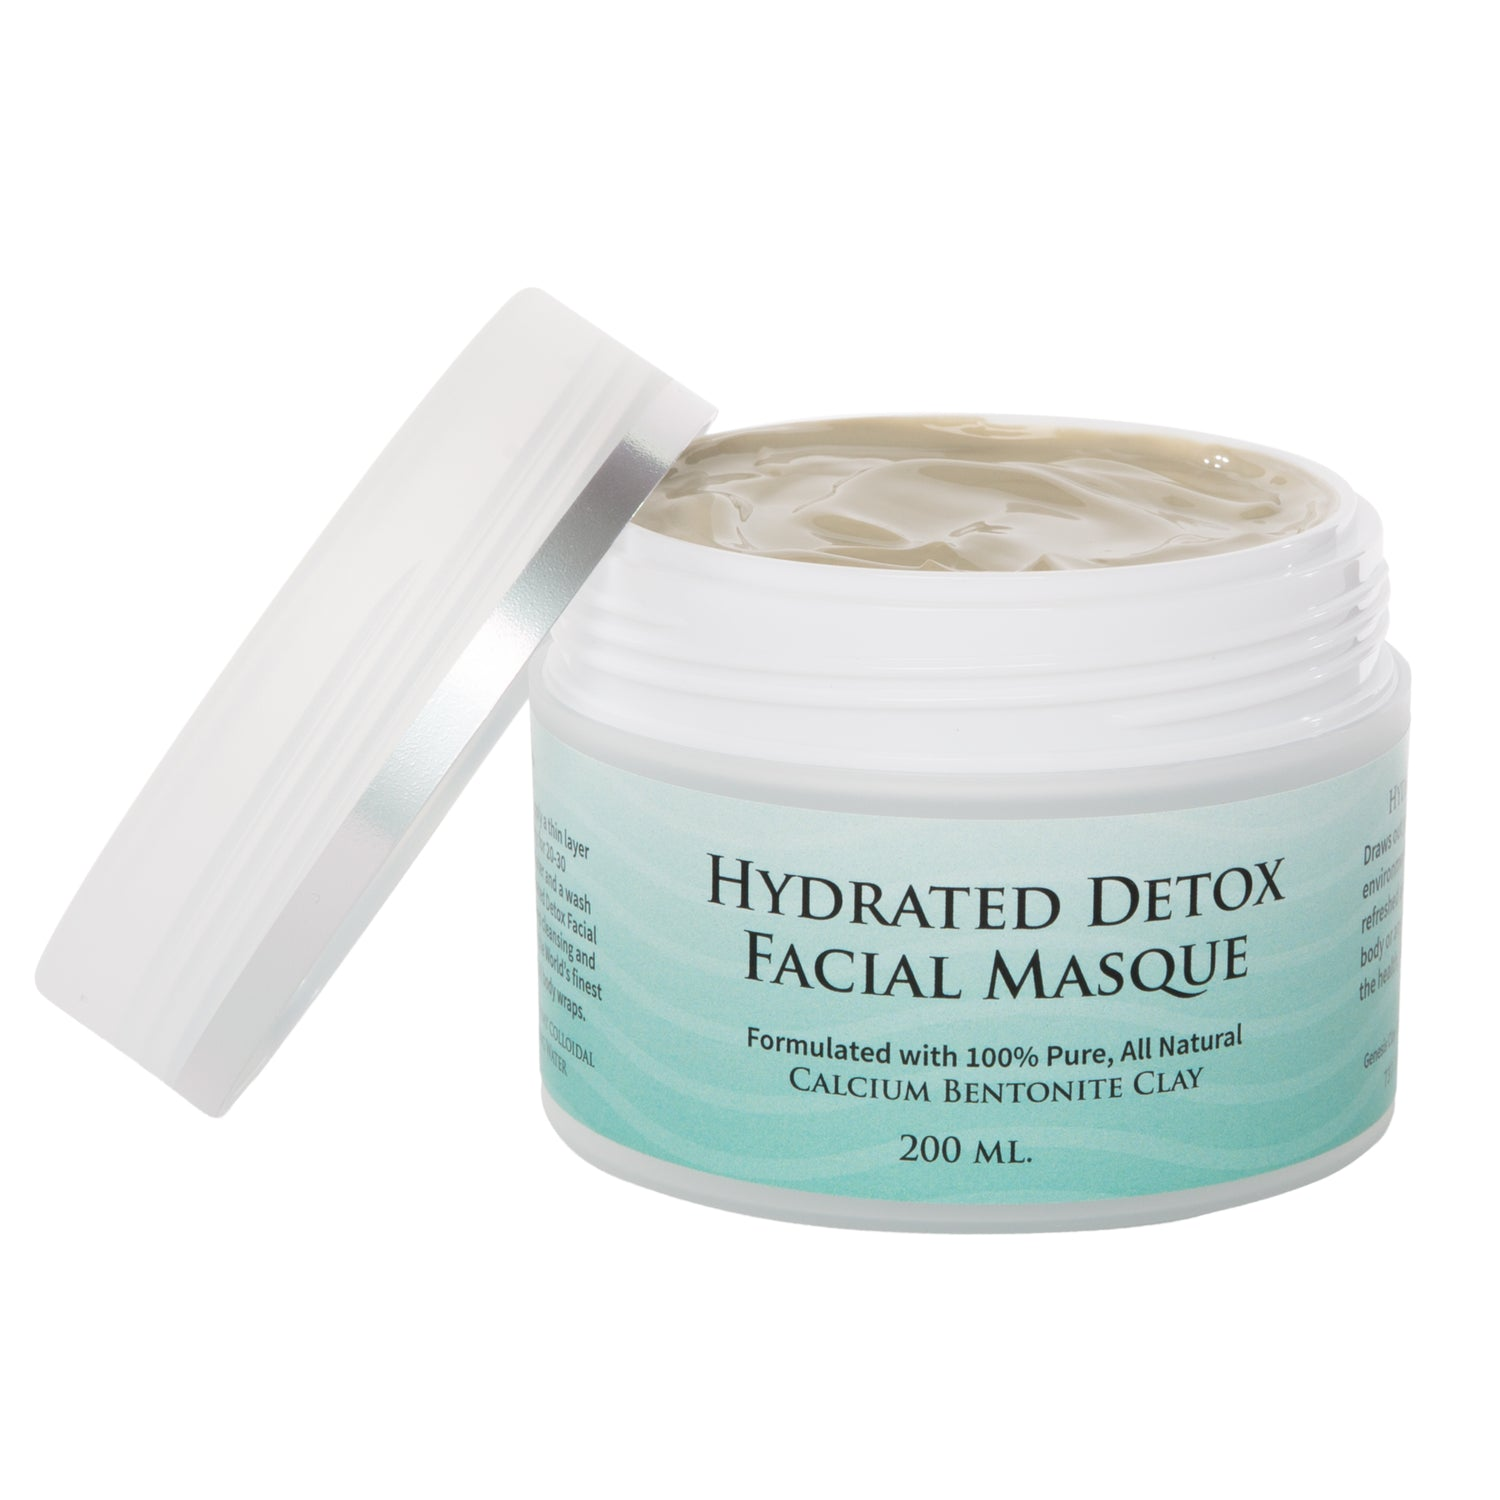 Hydrated Detox Facial Masque 100 ml